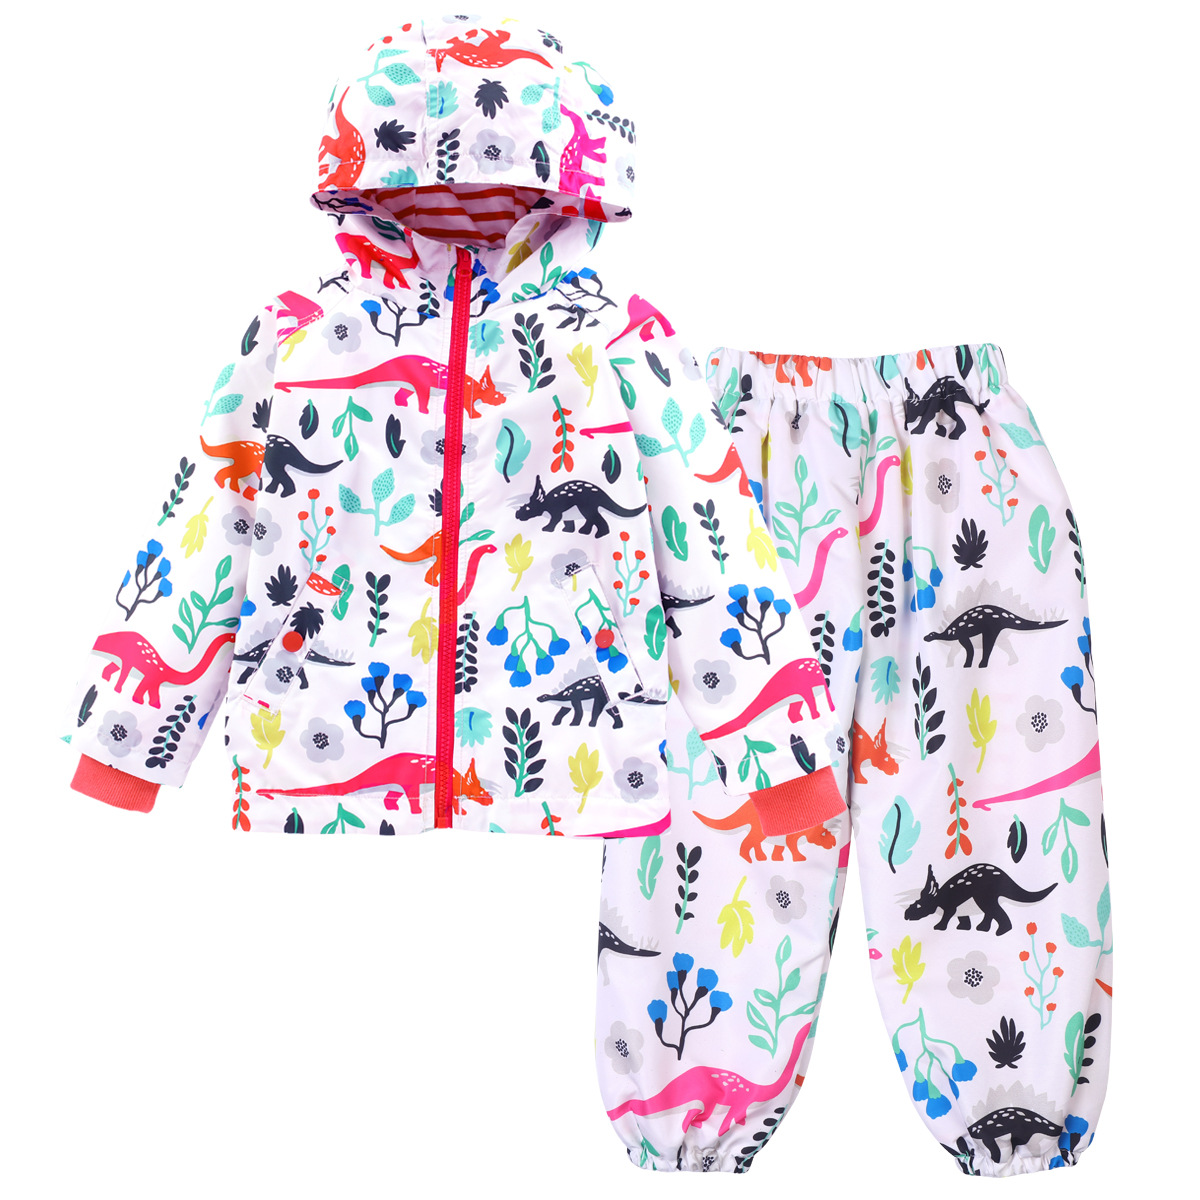 Kids Cartoon Clothes Suits Dinosaur Hooded Jacket + Casual Pants Two Pieces Boys Girls Sets Spring Autumn Rain Coat Tracksuits spring autumn kids clothes sets for boys girls hooded sweatshirts pants children gold velvet clothing suits